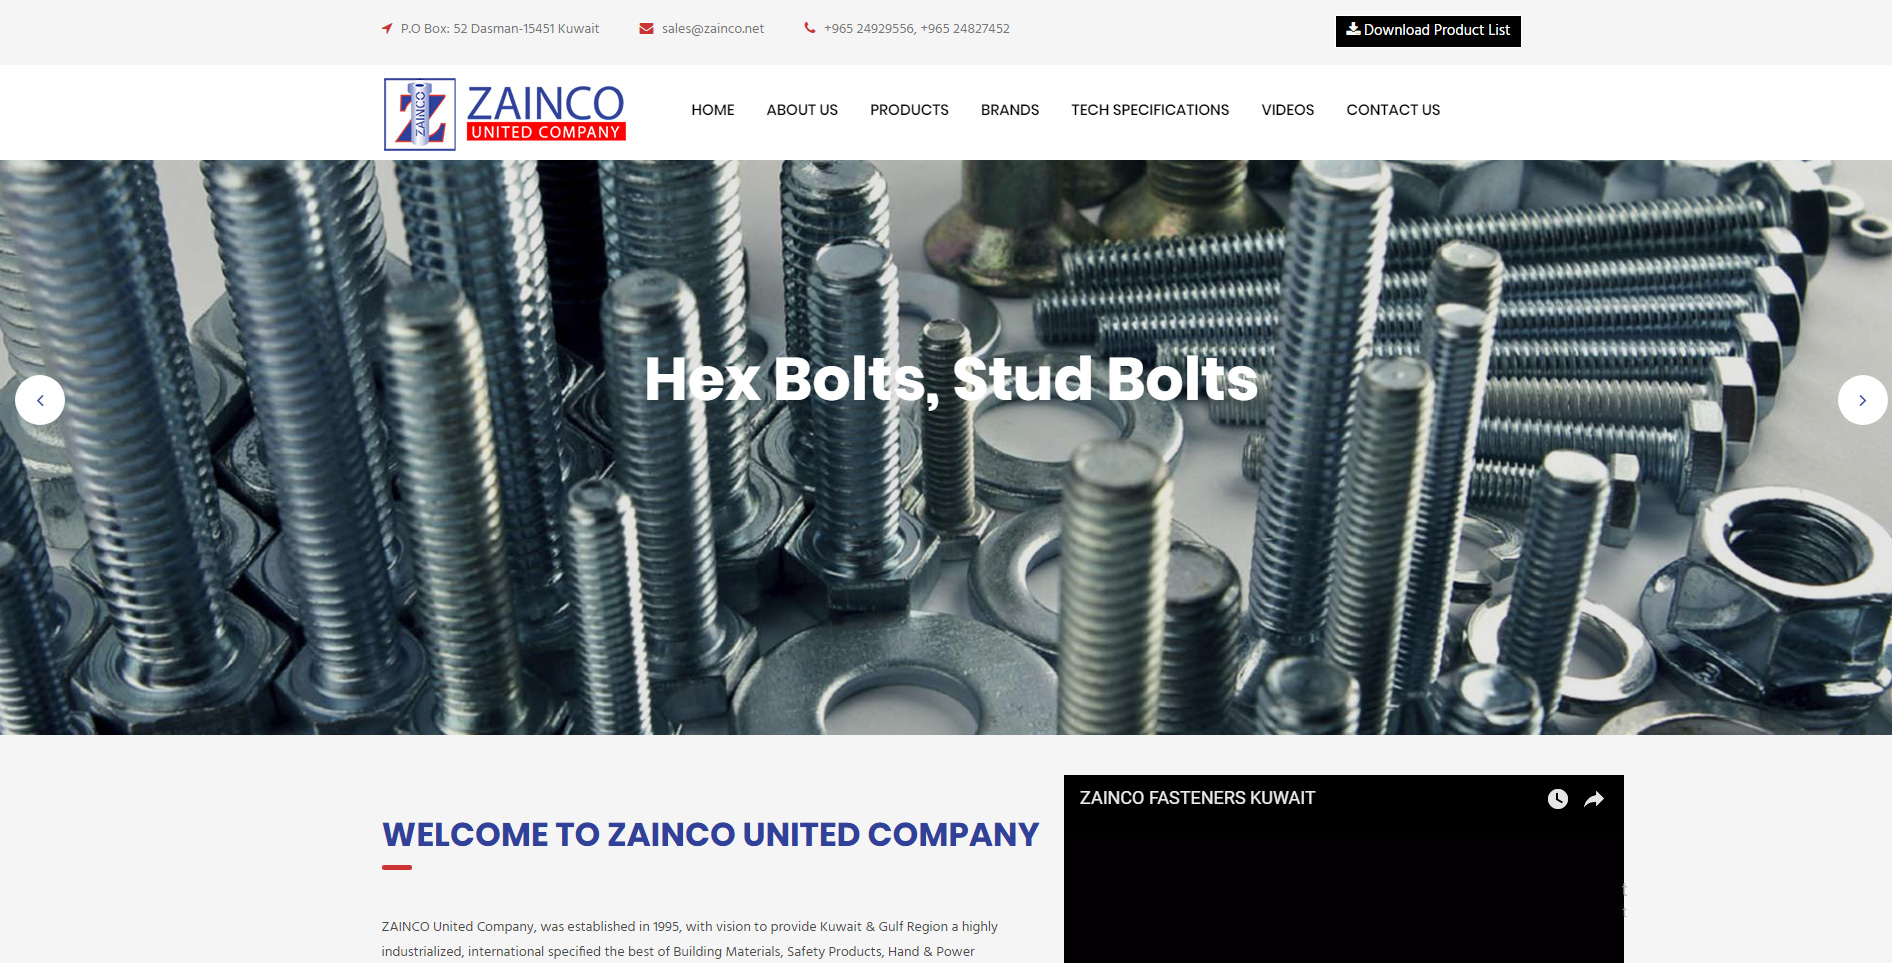 Zainco United Company